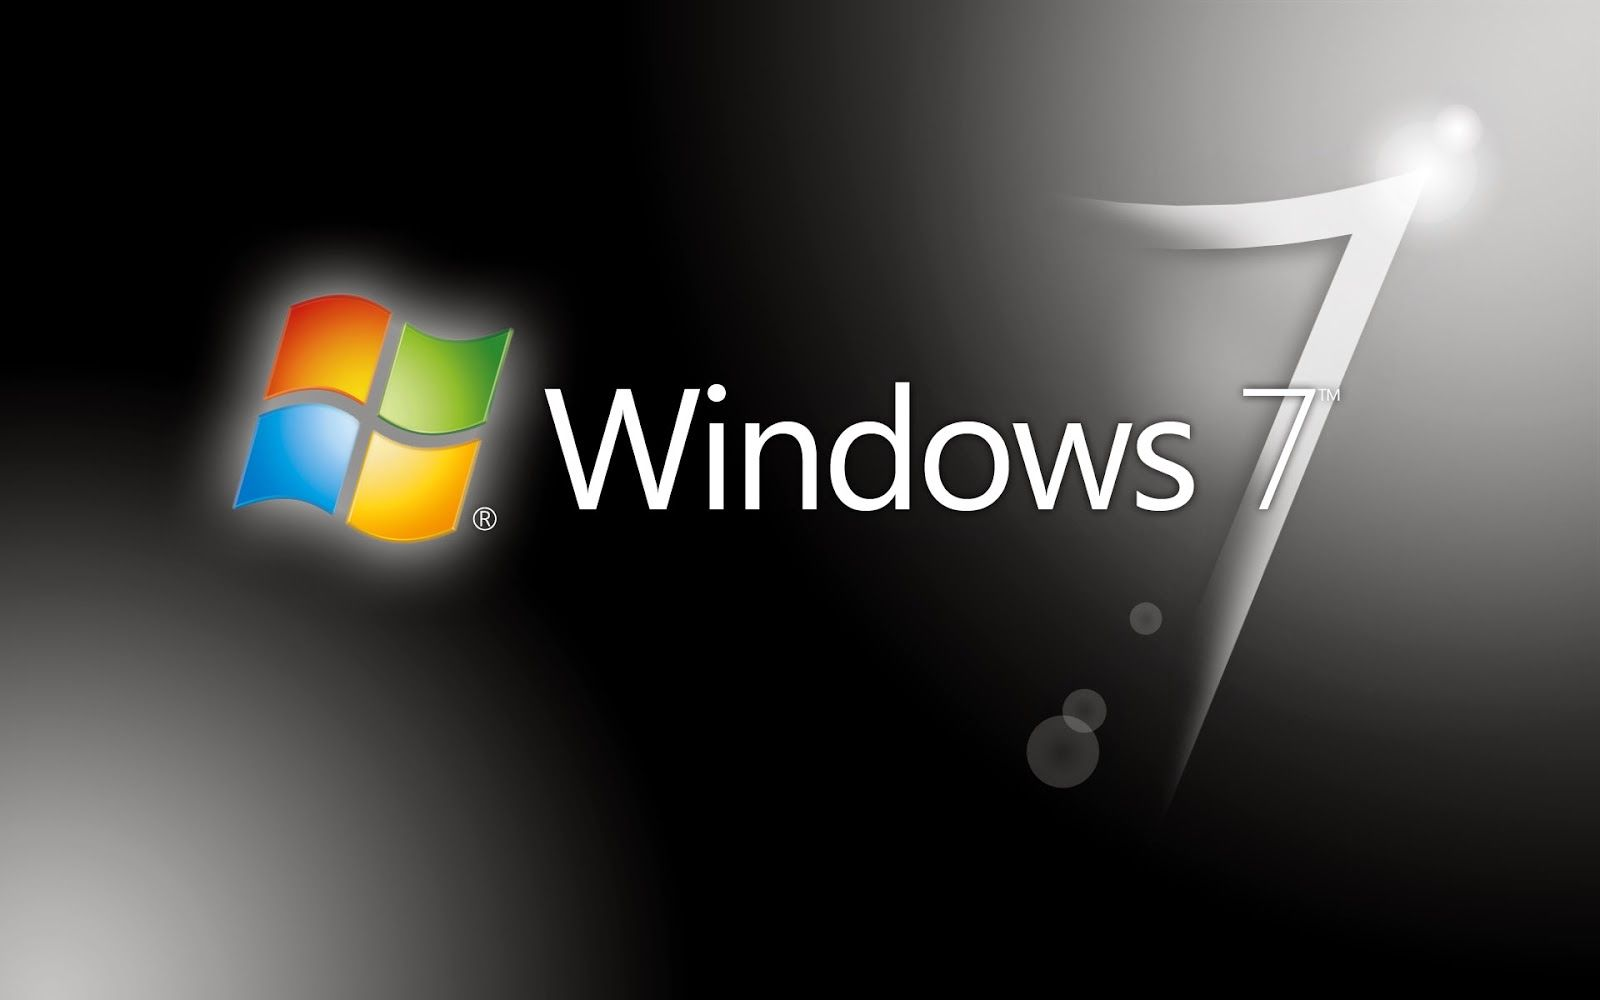 Live Wallpapers For Windows 7 32bit Free Download Windows Wallpaper Windows Technology Wallpaper